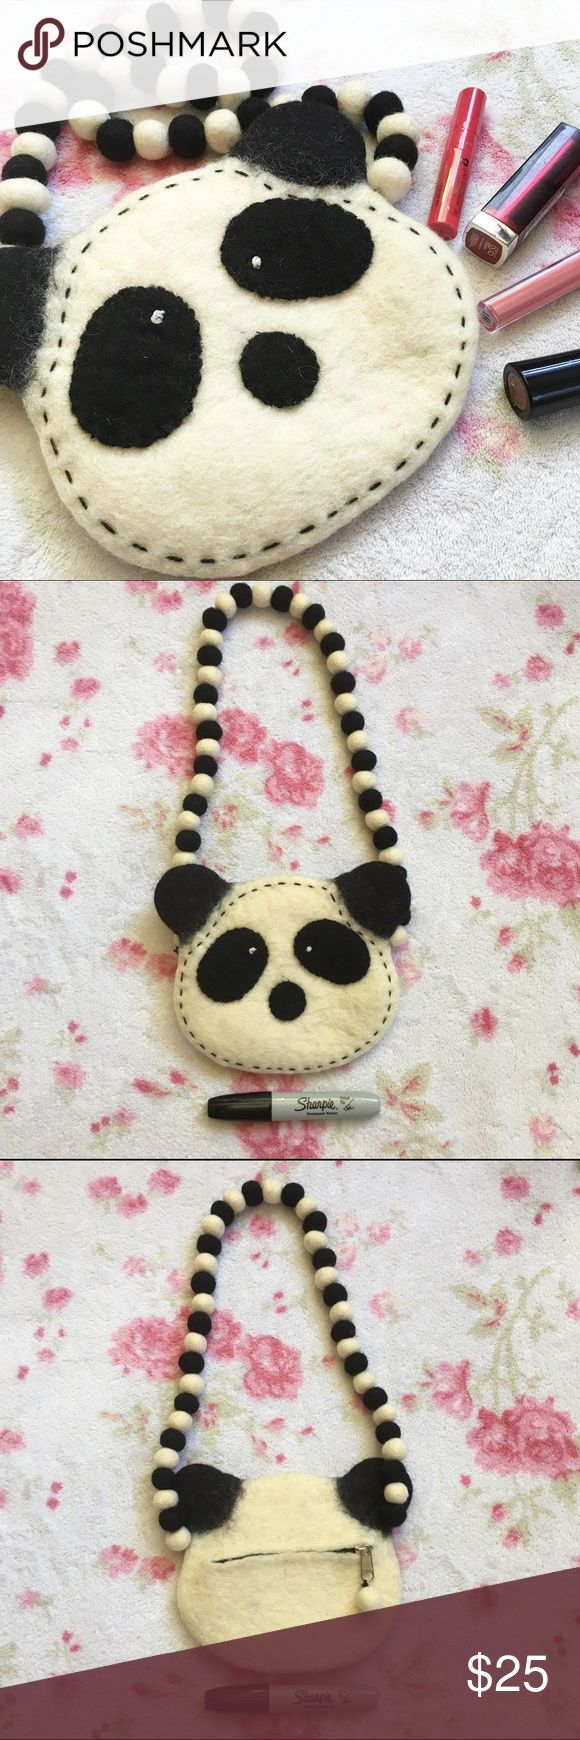 Felted Panda Face Kawaii Purse  Needle felted, wool panda face purse    The main portion of the face of the panda is off white and the details are black. The eye spots and nose are sewn on and there is black embroidery around the edges of the face    Zipper opens into a small pouch on back   Purchased from at an art fair, it's handmade    Sharpie is for scale   Keywords: Kawaii, purse, cutesy, handmade purse, pastel punk, Kawaii clothes Handmade Bags Mini Bags